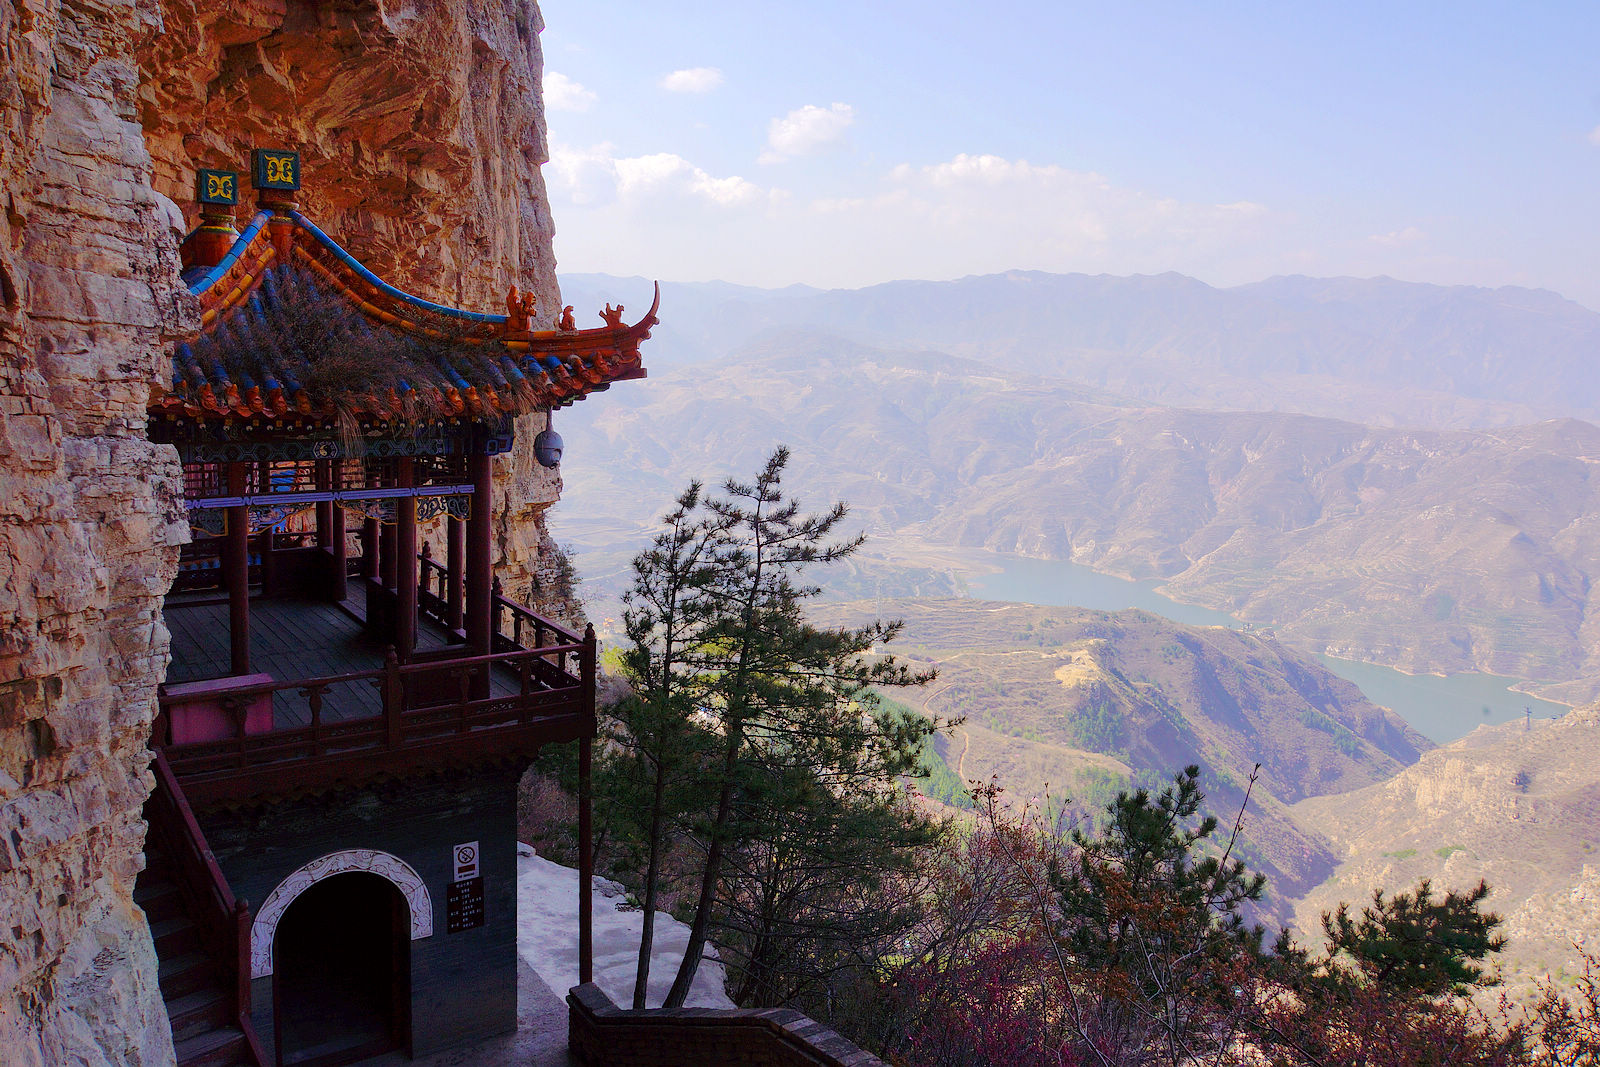 Temples along cliff